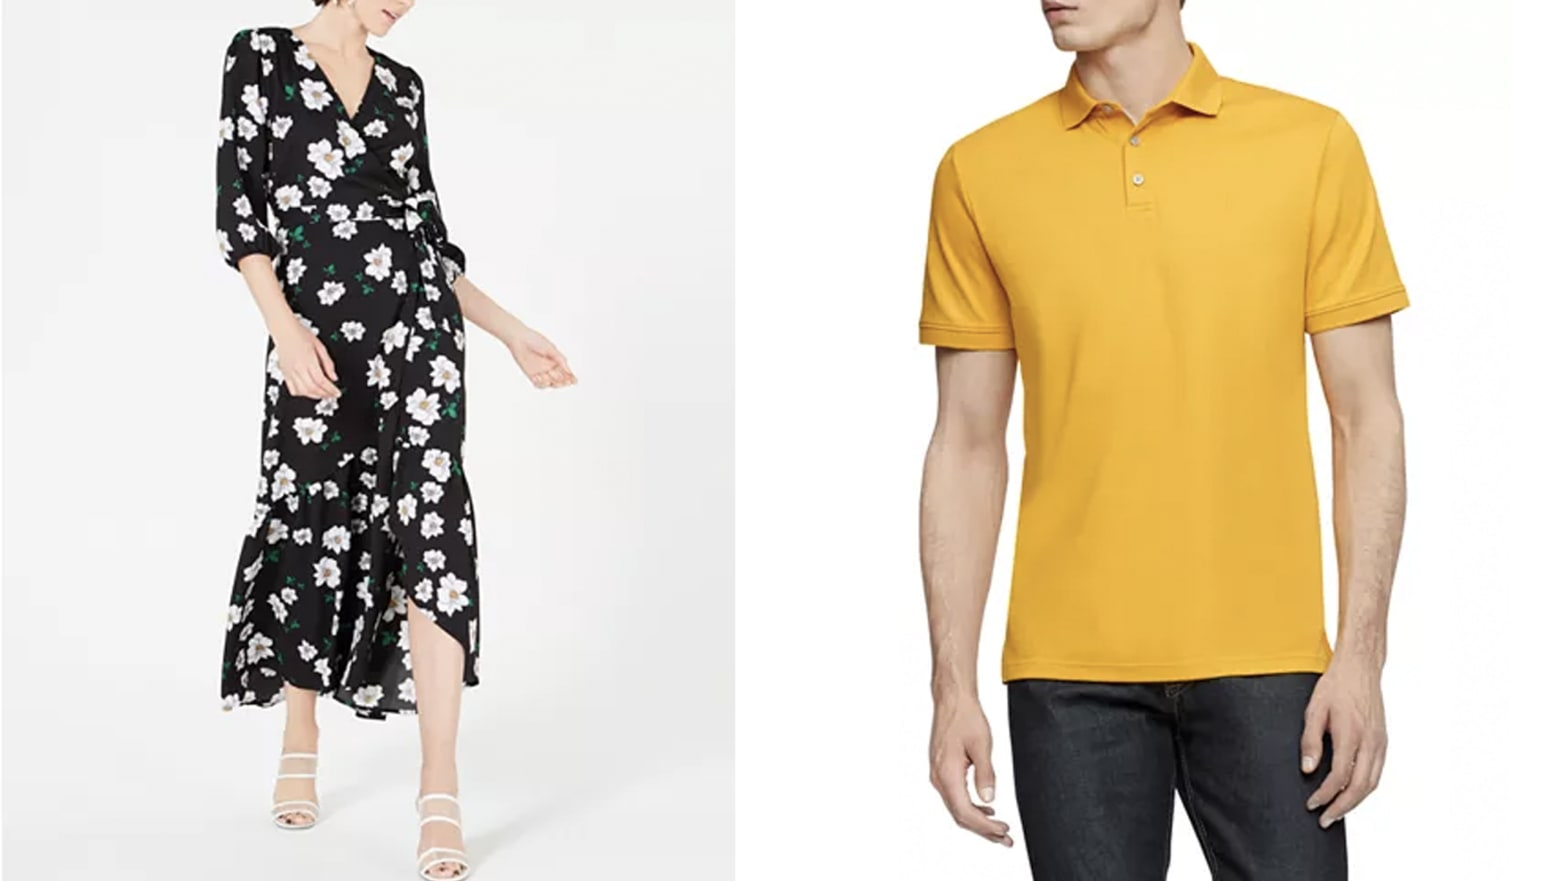 Get a Fall Preview With an Extra 25% Off at Macy's